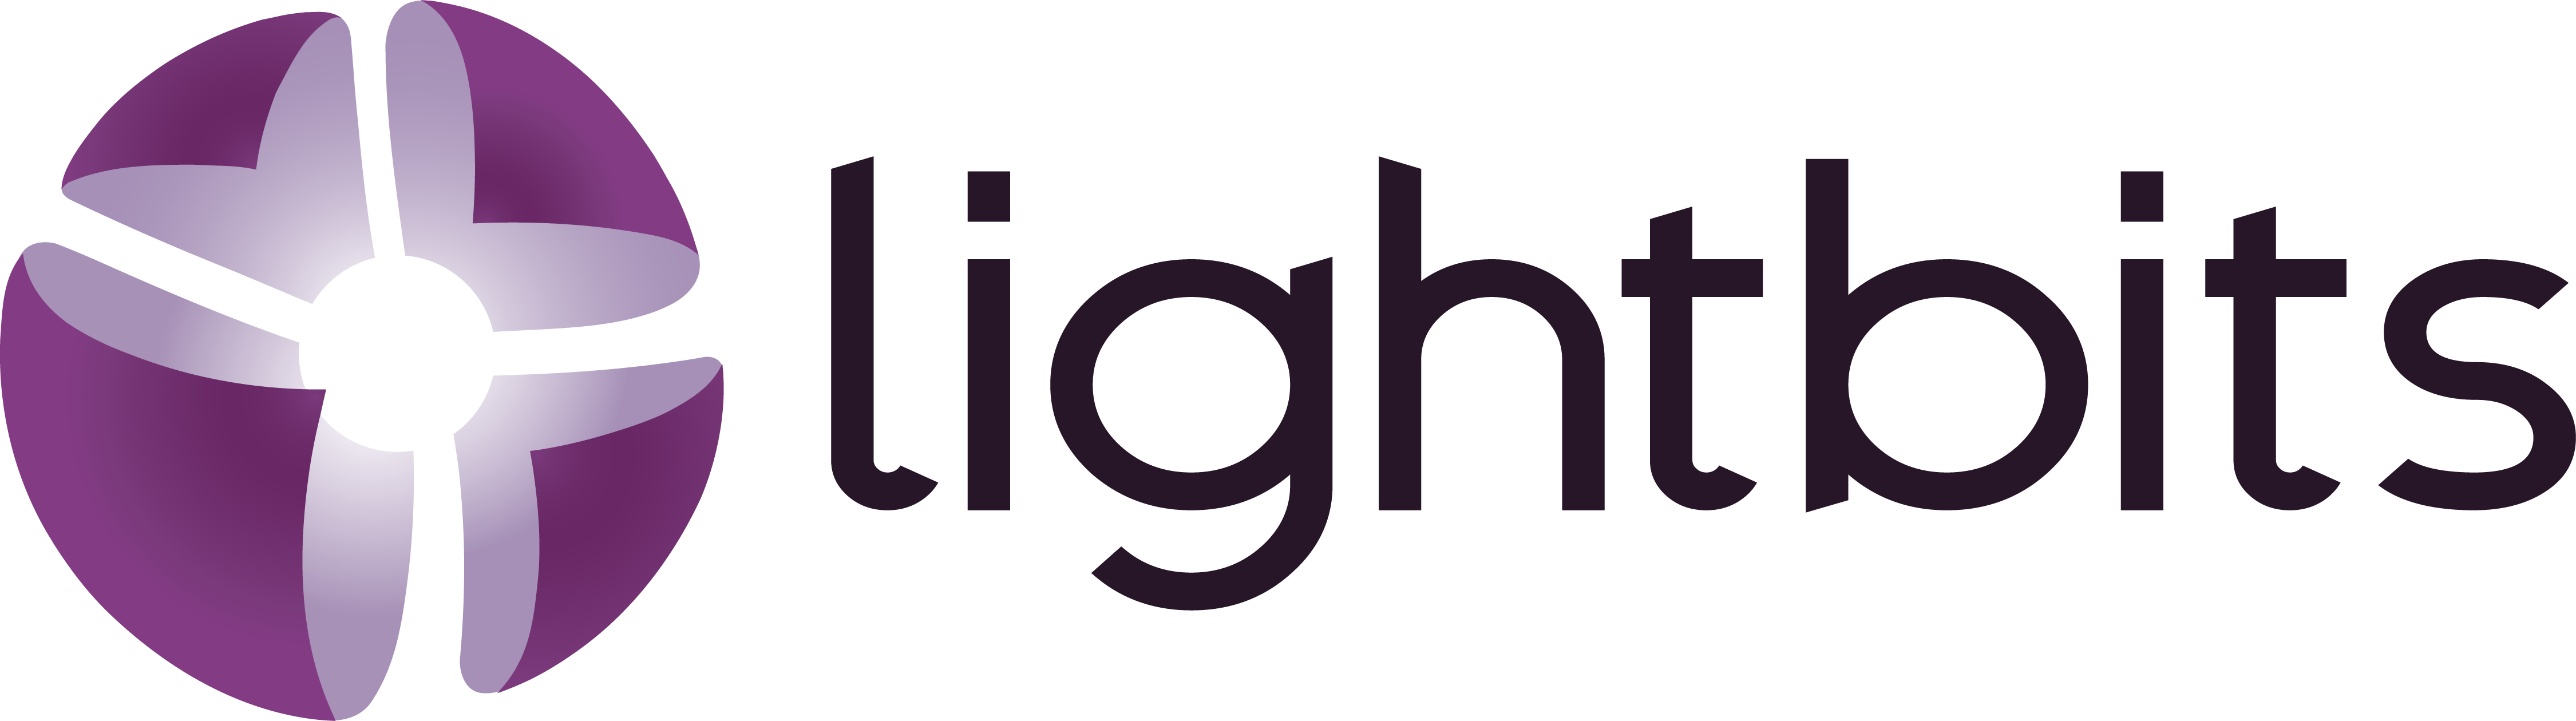 Lightbits Labs